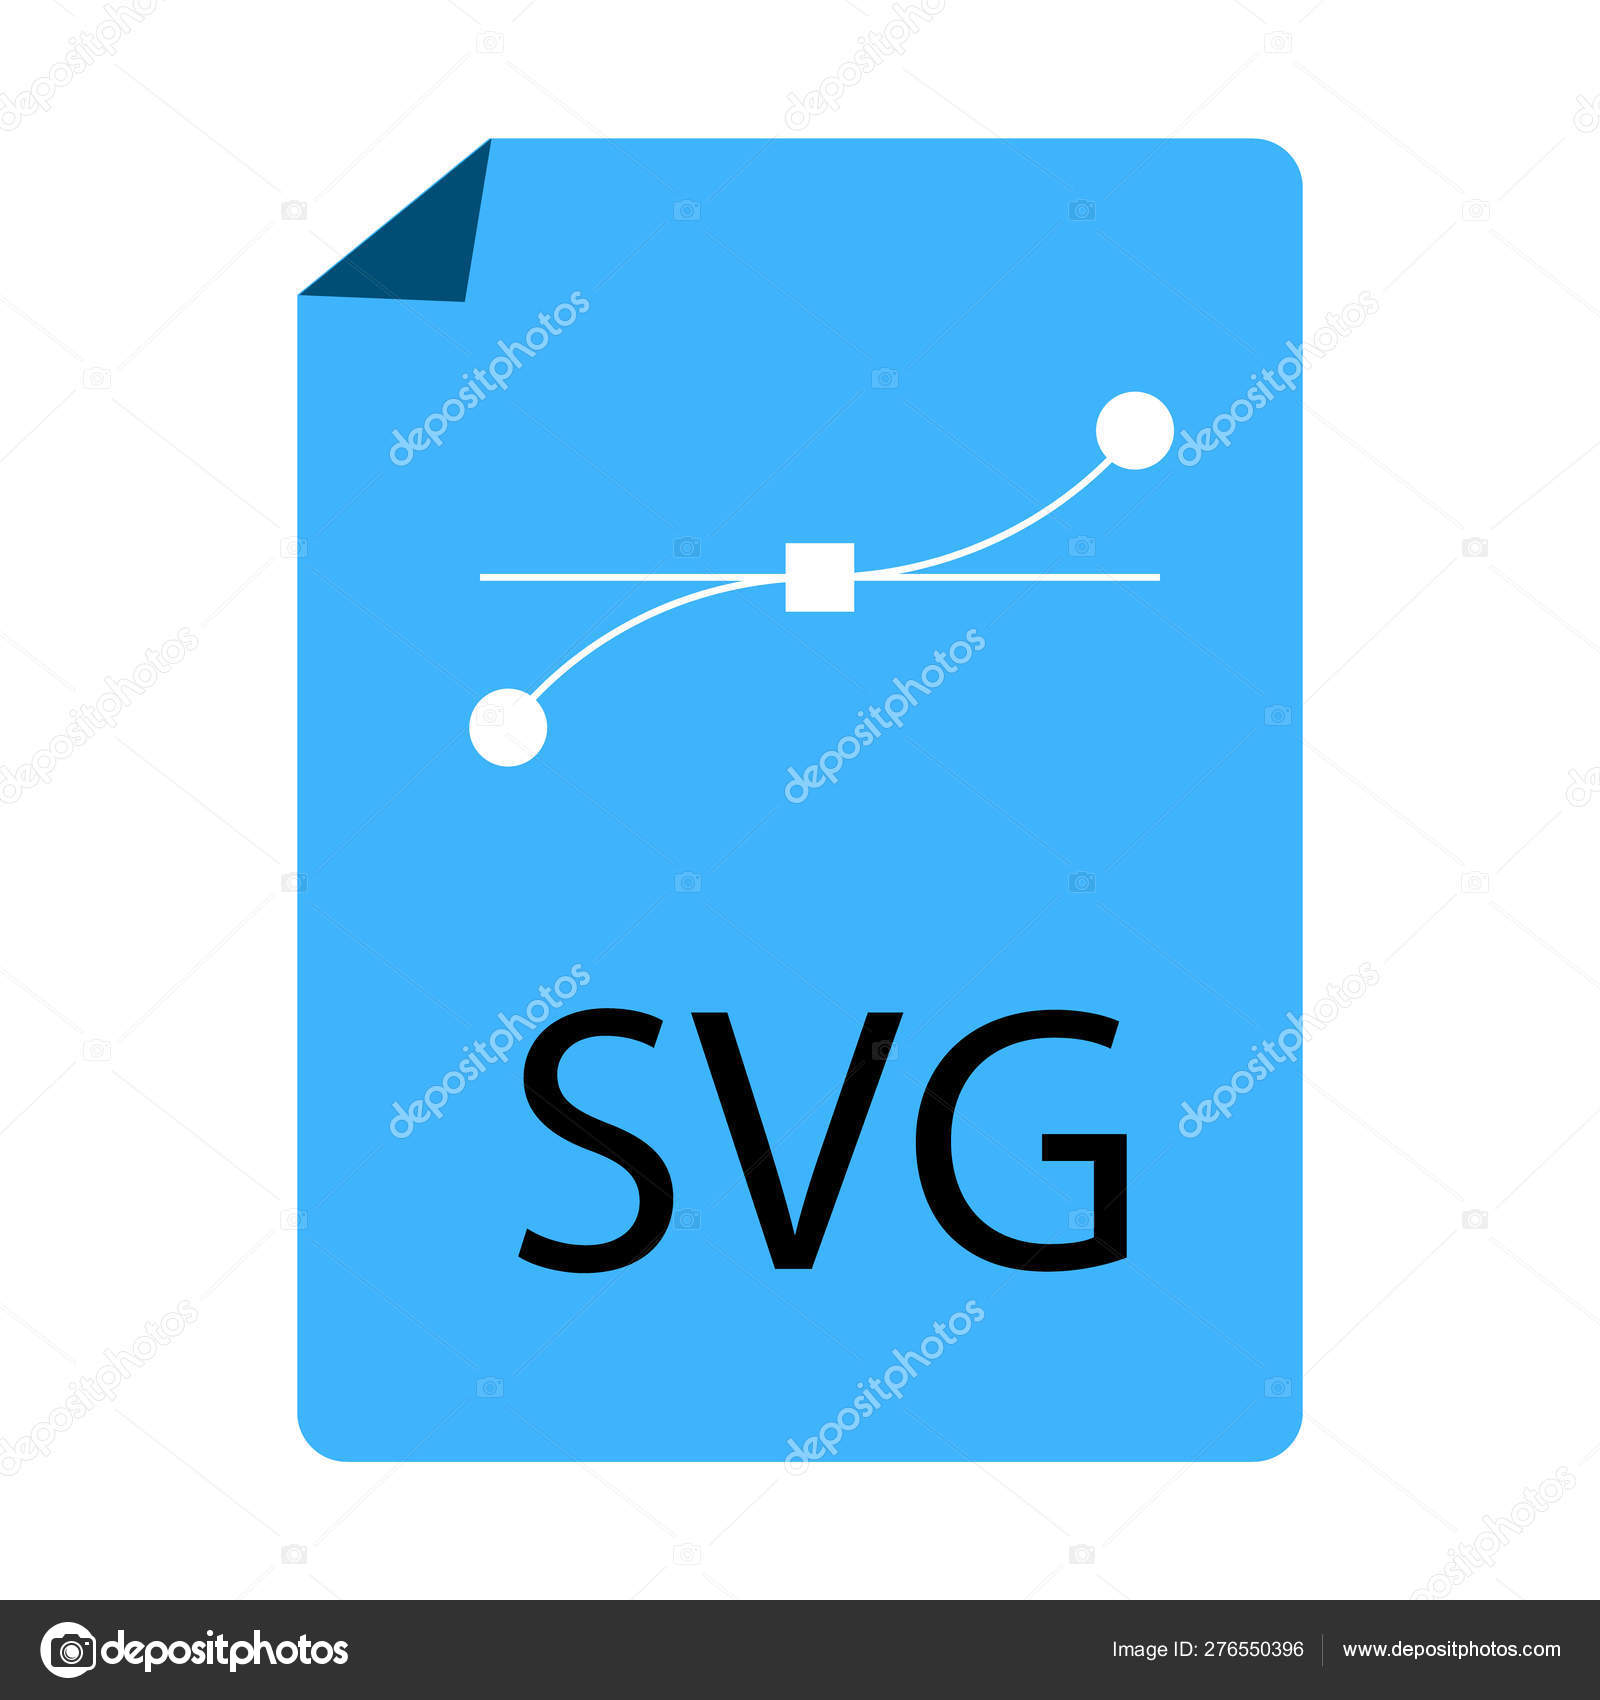 Blue SVG File Document icon on white background  flat style